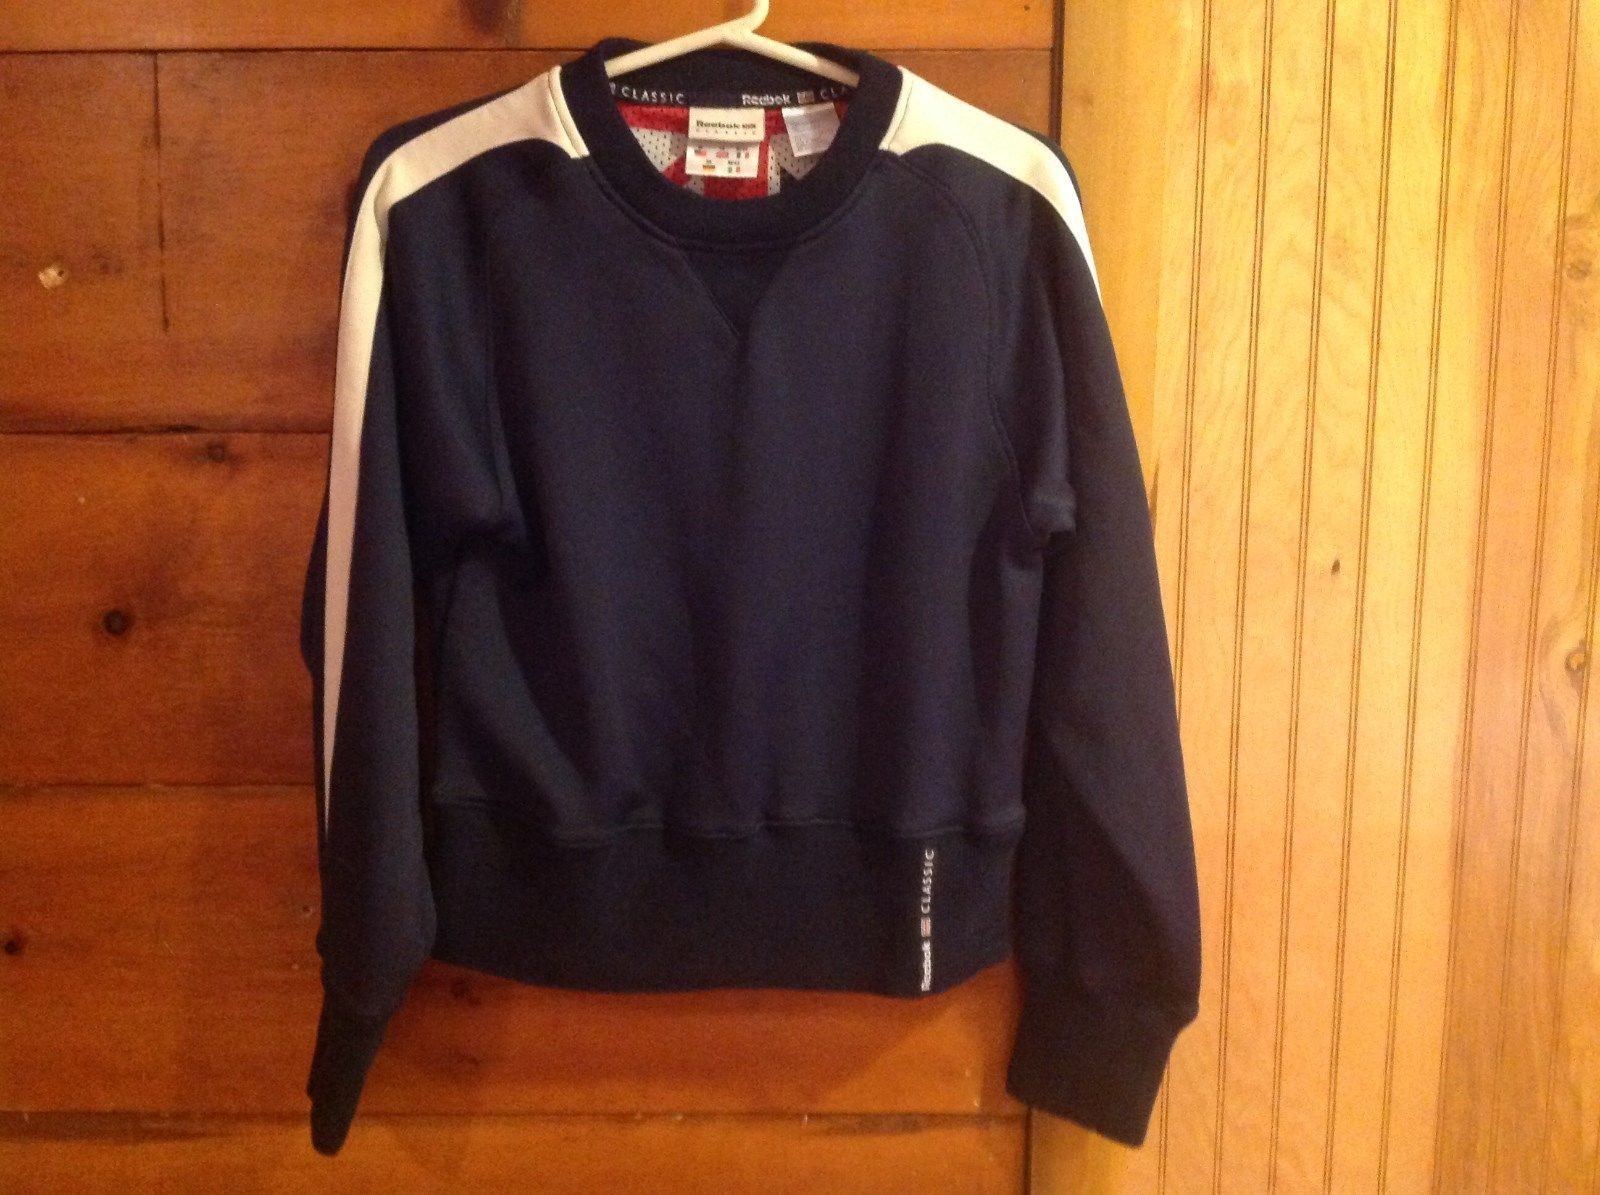 Reebok Classic Sweatshirt Dark Navy Blue with White Stripes Long Sleeves Size M